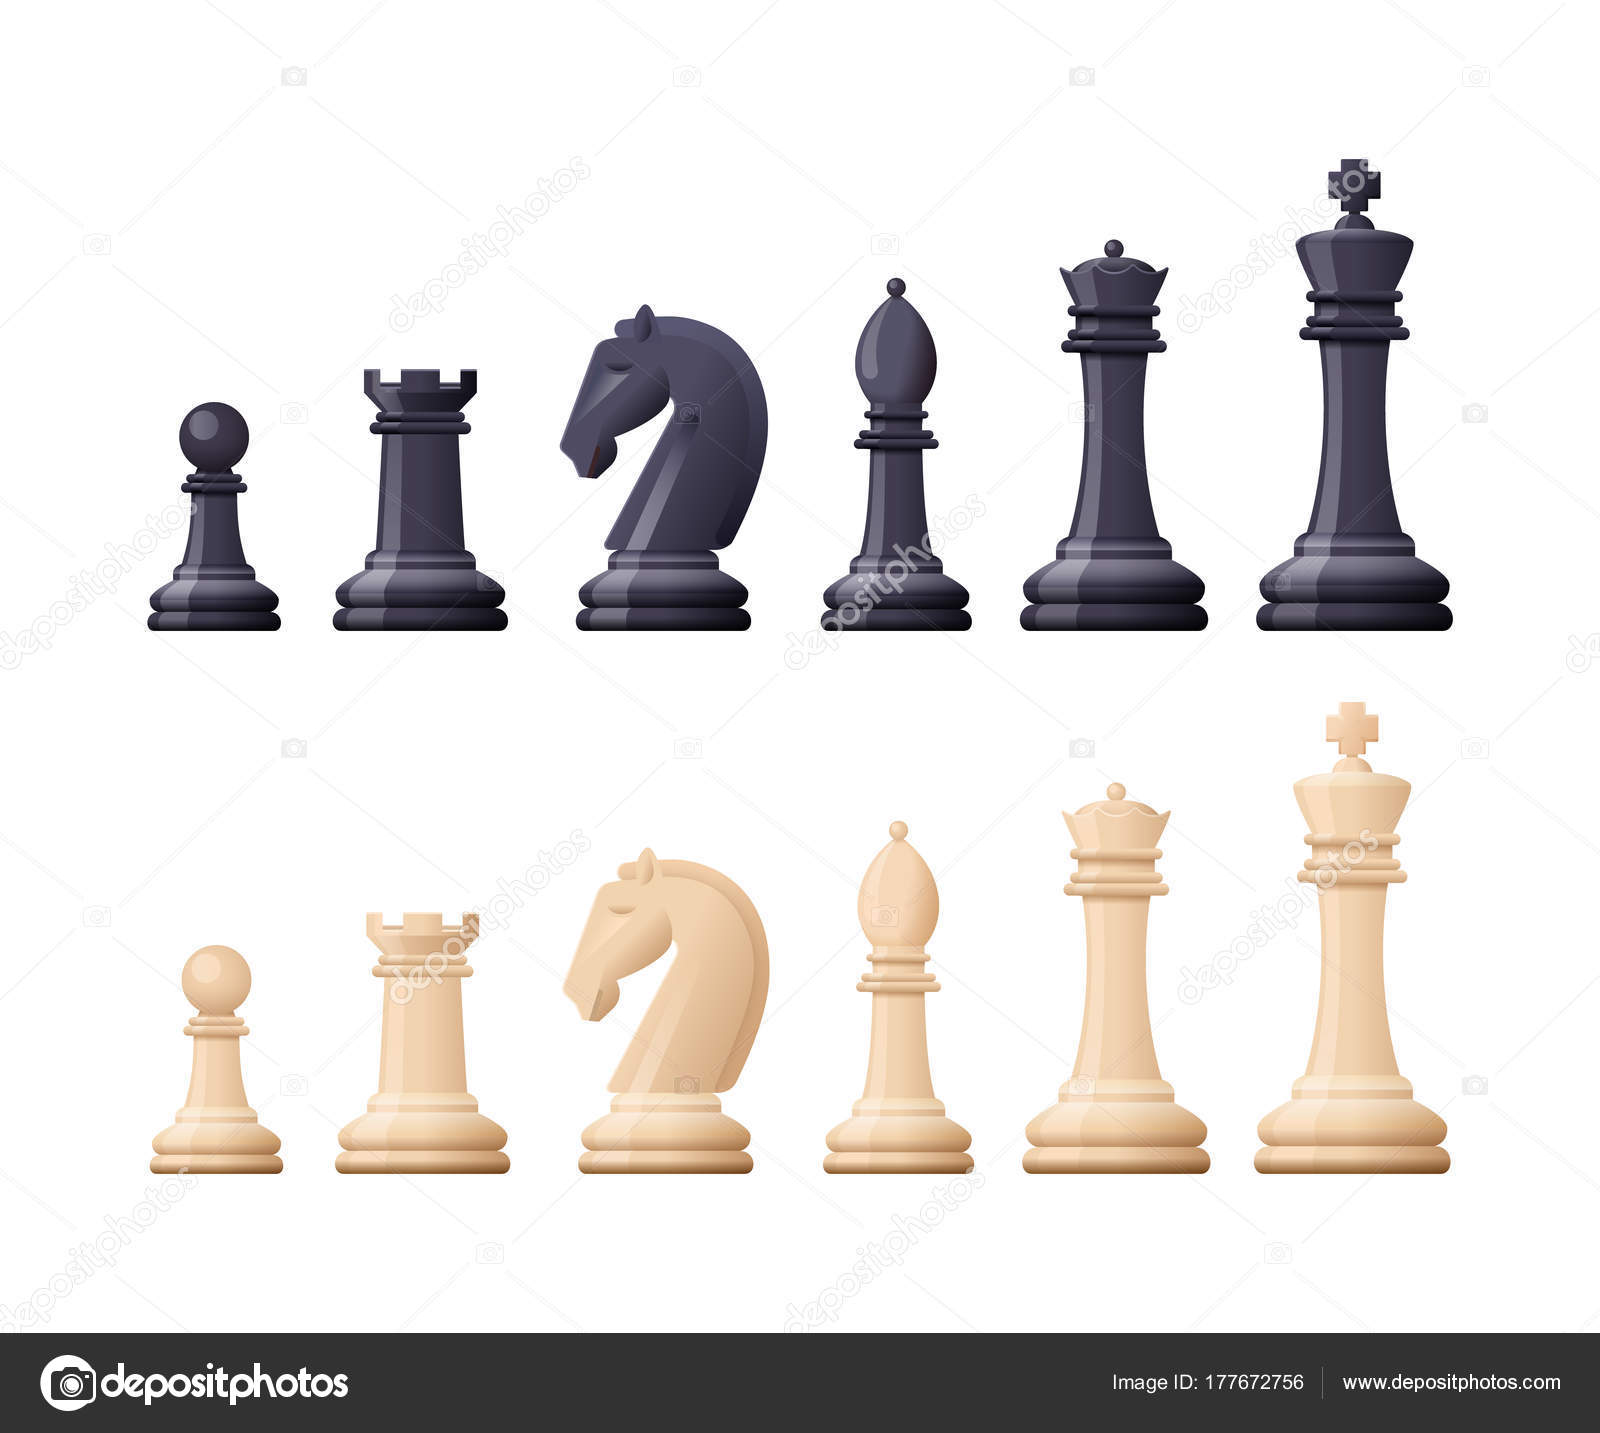 Black White Chess Game Pieces Figures Logical Tactical Turn Based